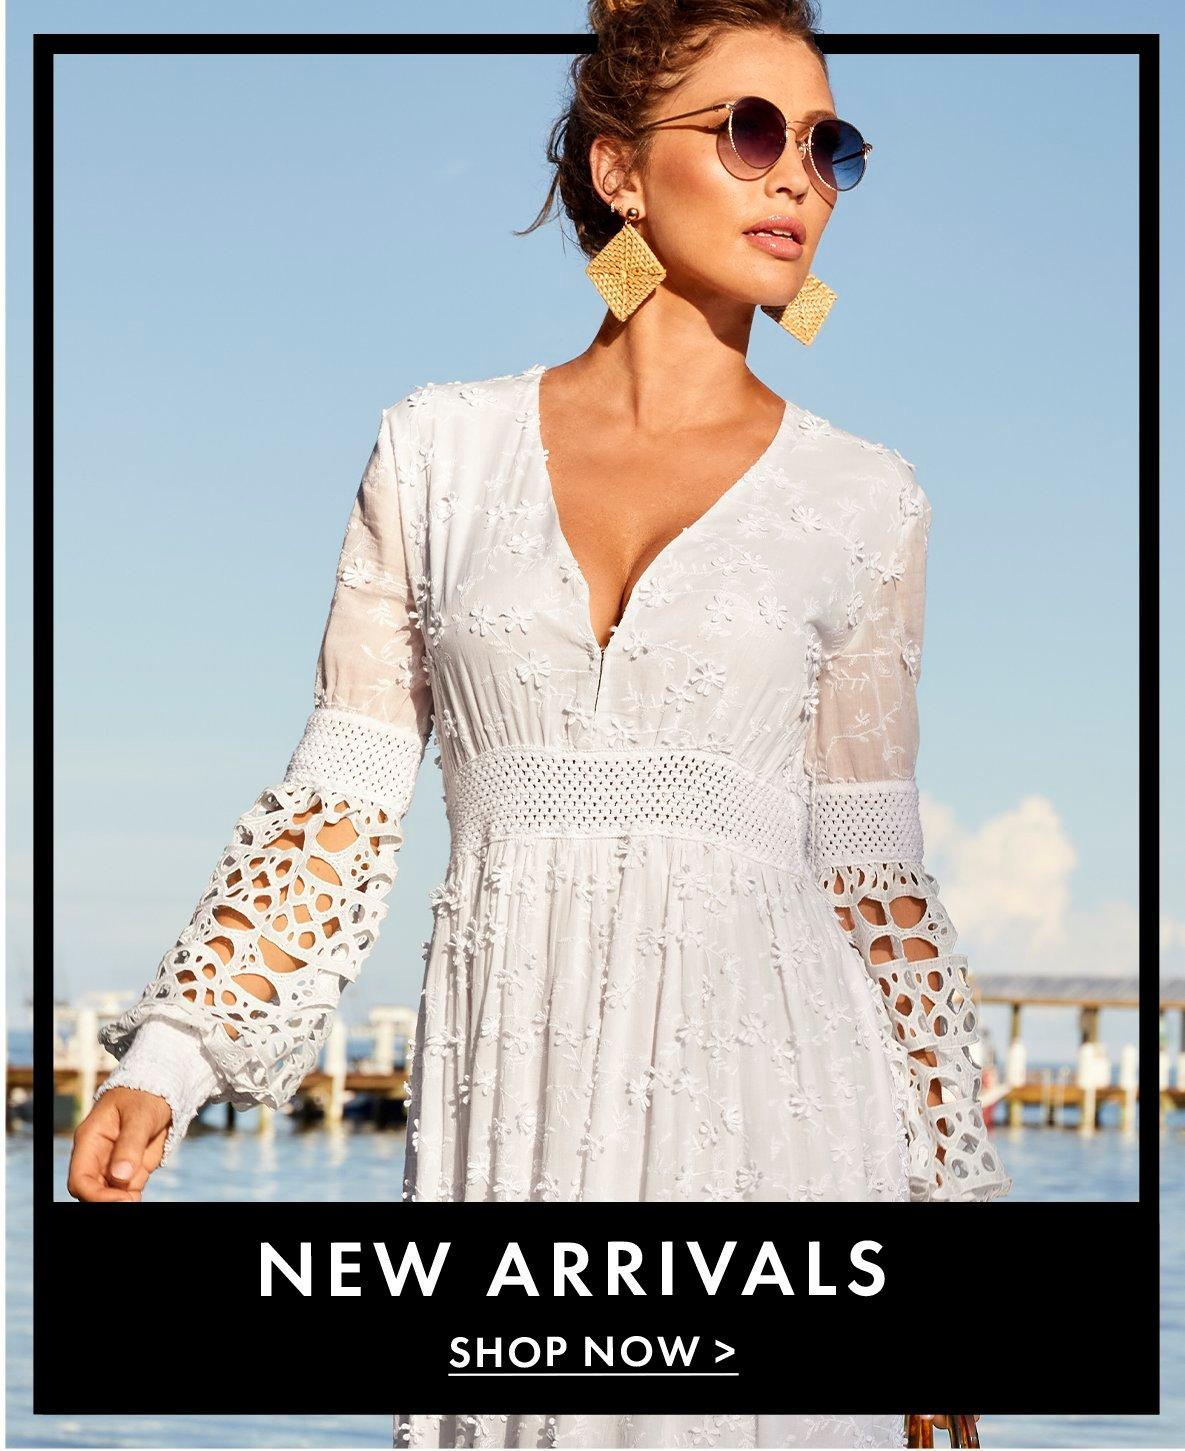 model wearing a white lace long-sleeve maxi dress, straw earrings, and sunglasses.